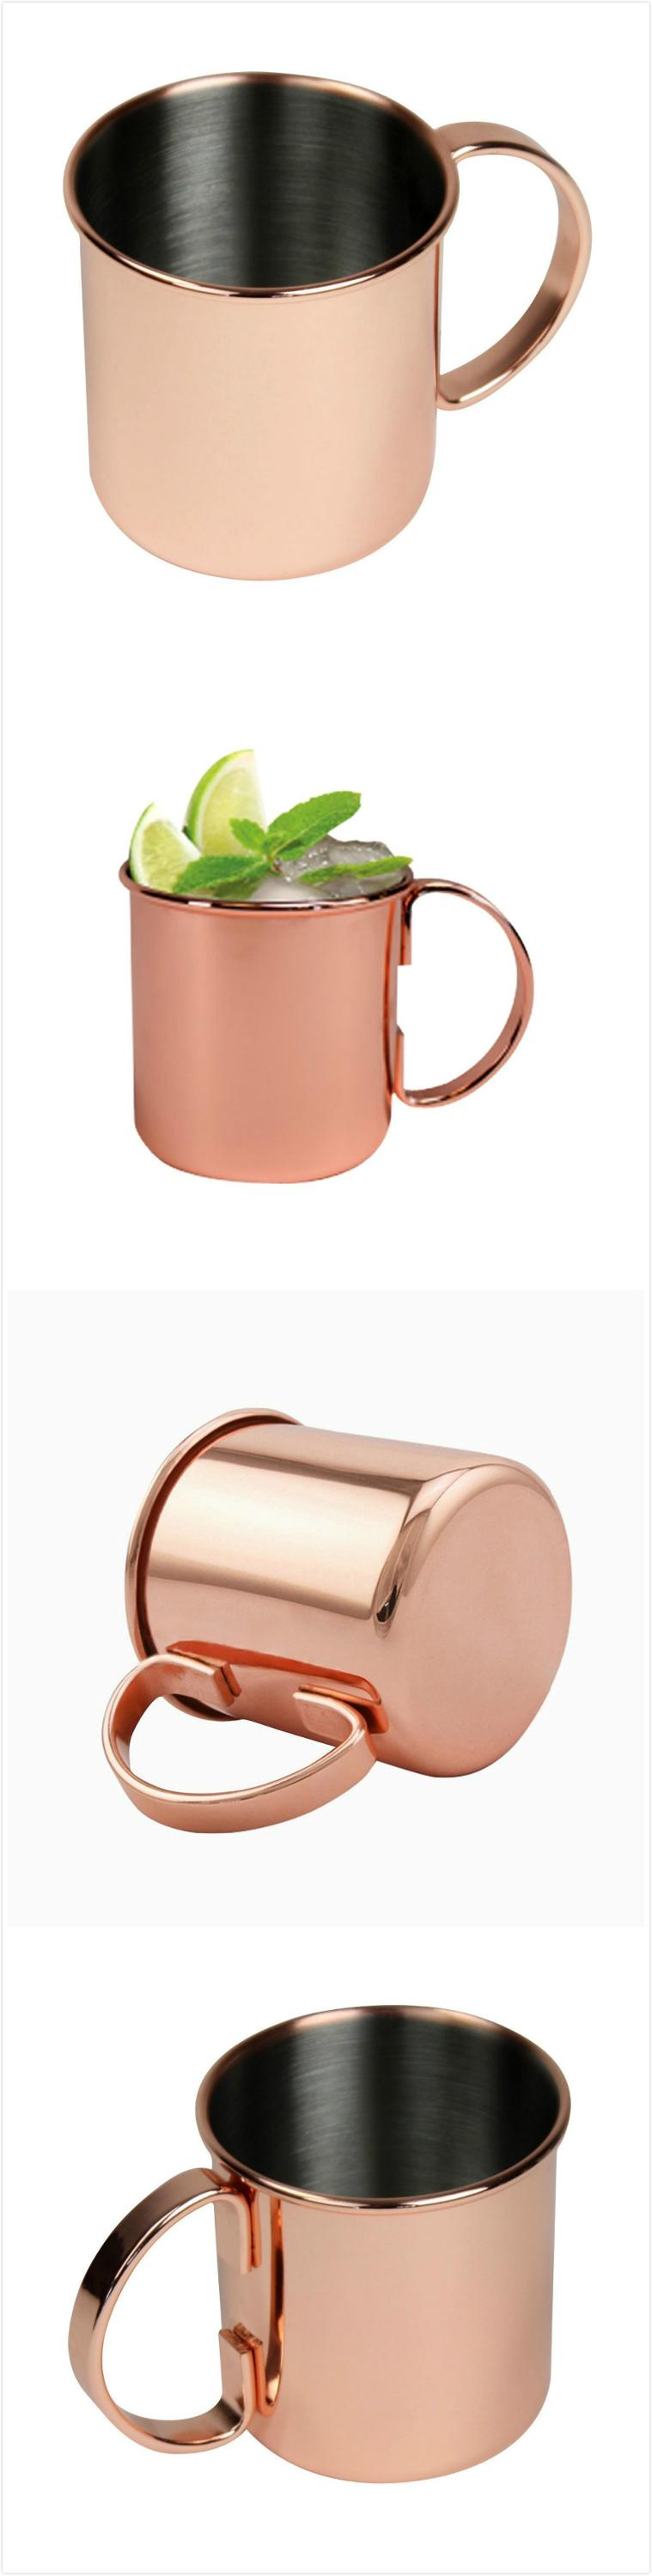 Factory wholesale Stainless Steel 16oz Moscow Mule Copper beer wine cup drinking mugs